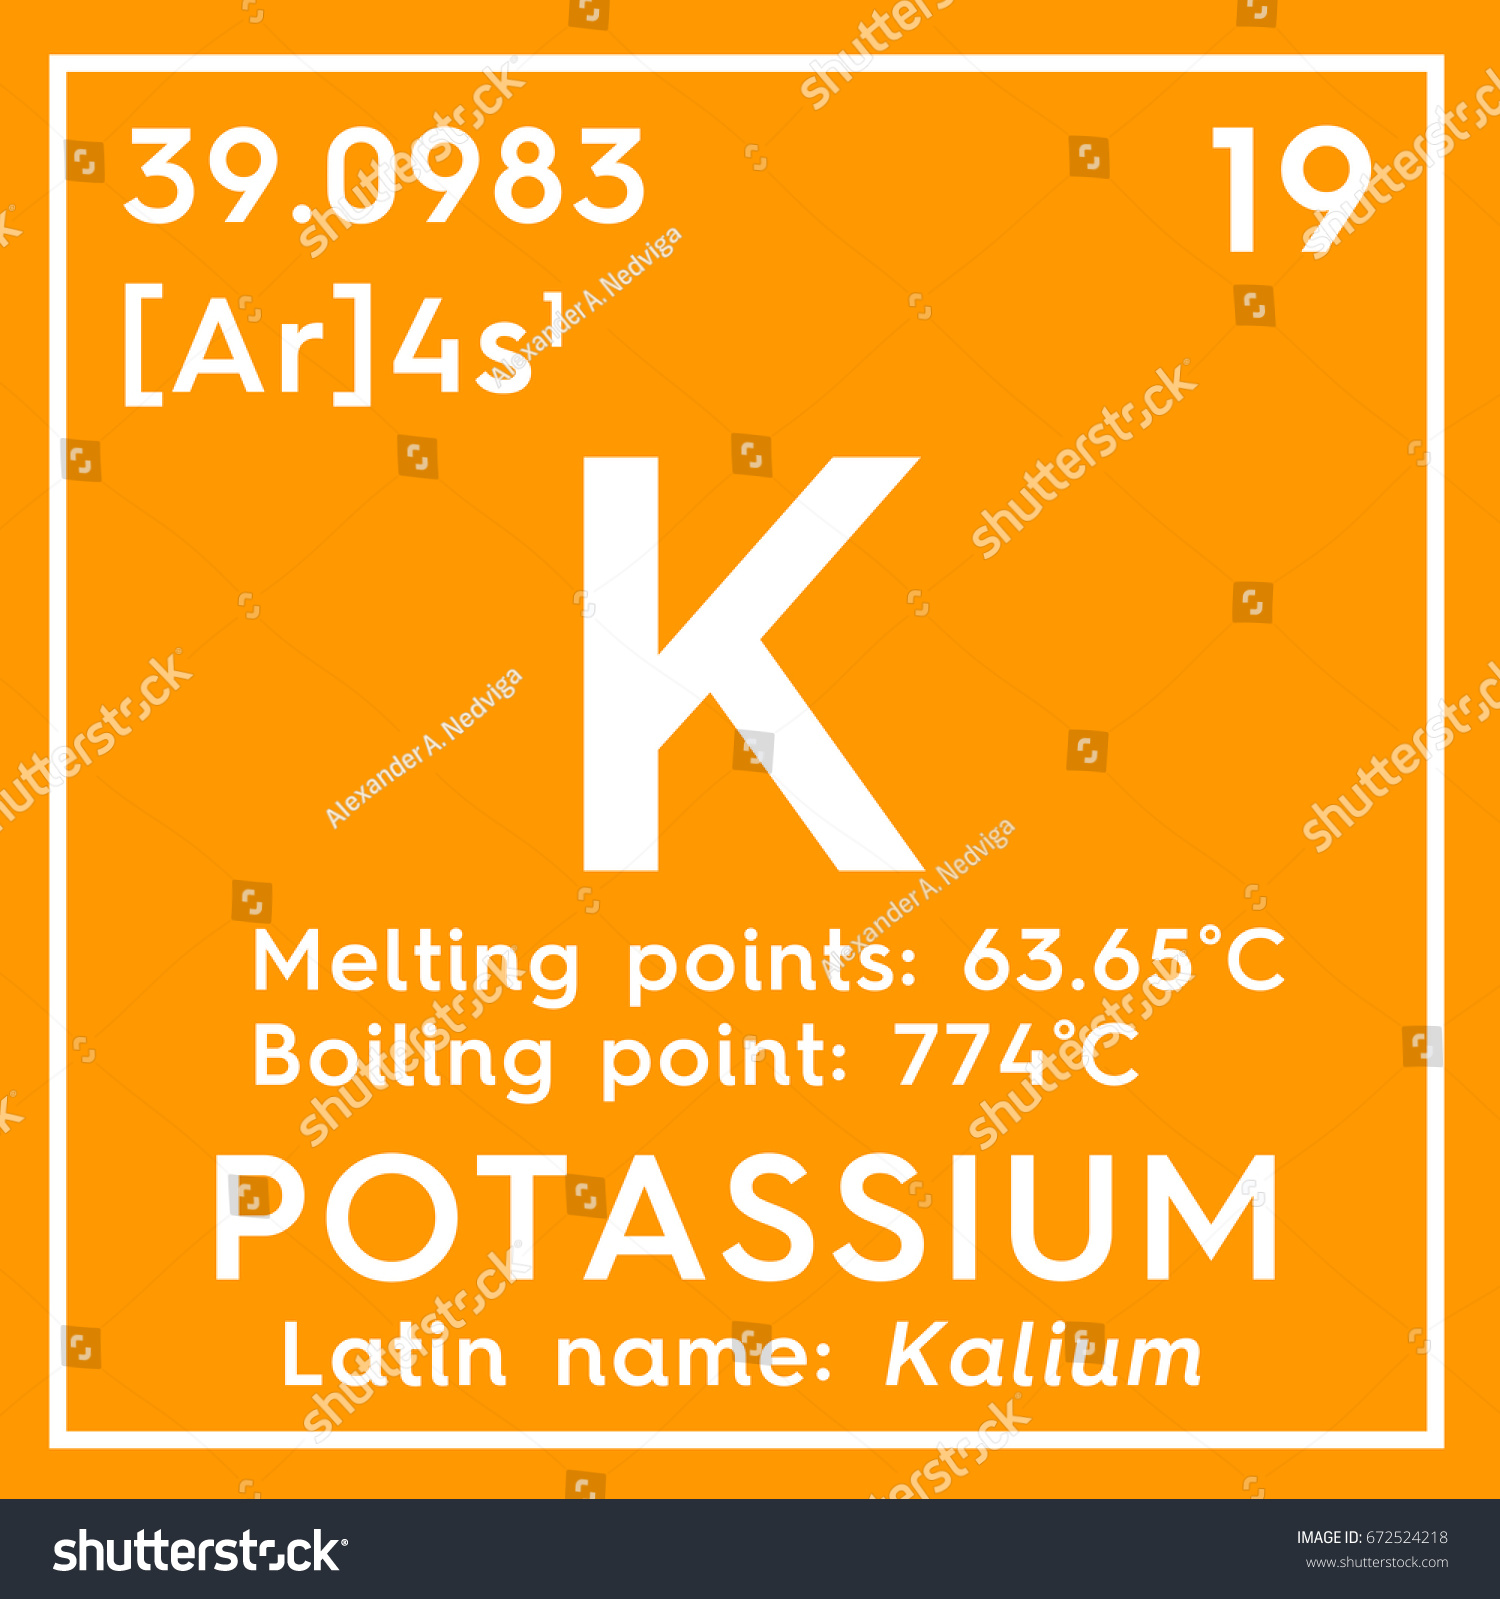 Periodic table of elements melting points image collections periodic table of elements melting points gallery periodic table periodic table melting and boiling points choice gamestrikefo Gallery